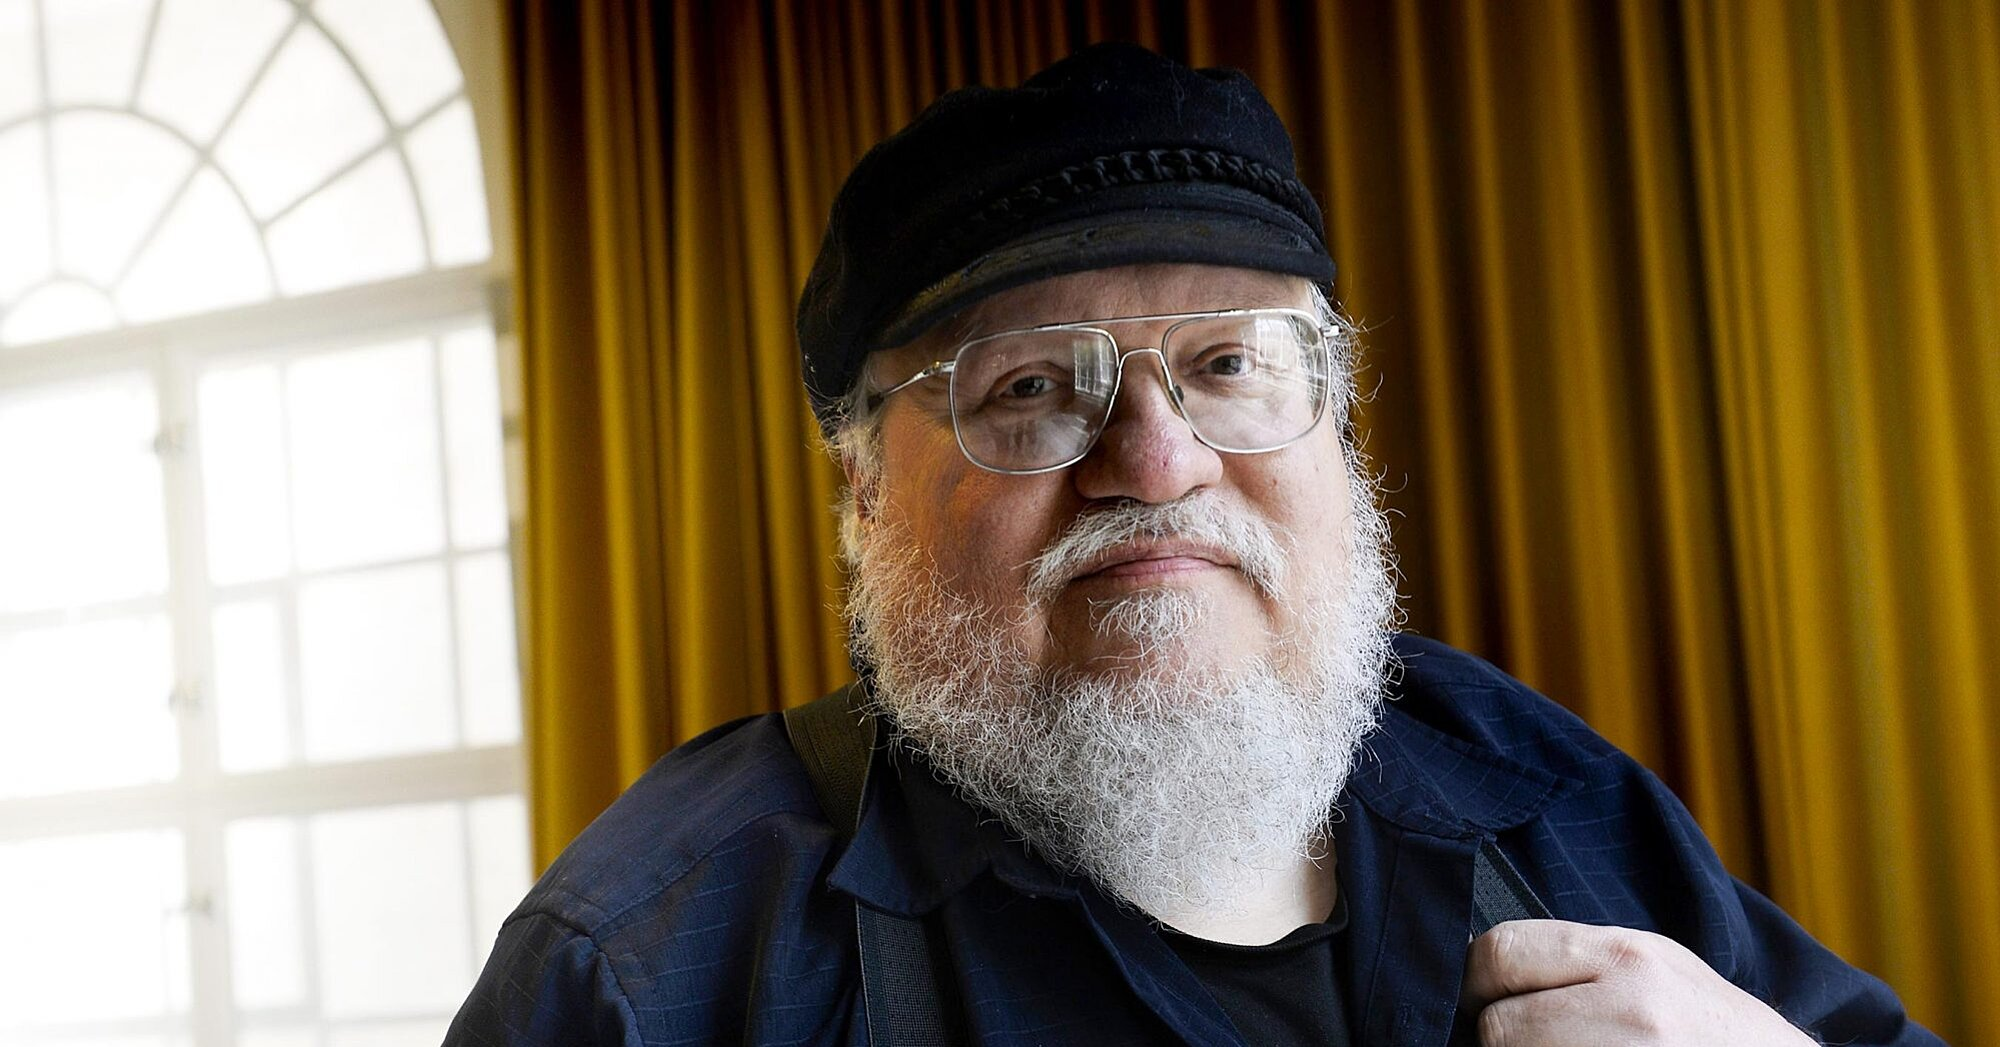 George R.R. Martin hopes 'The Winds of Winter' will be released in 2021: 'A huge book'